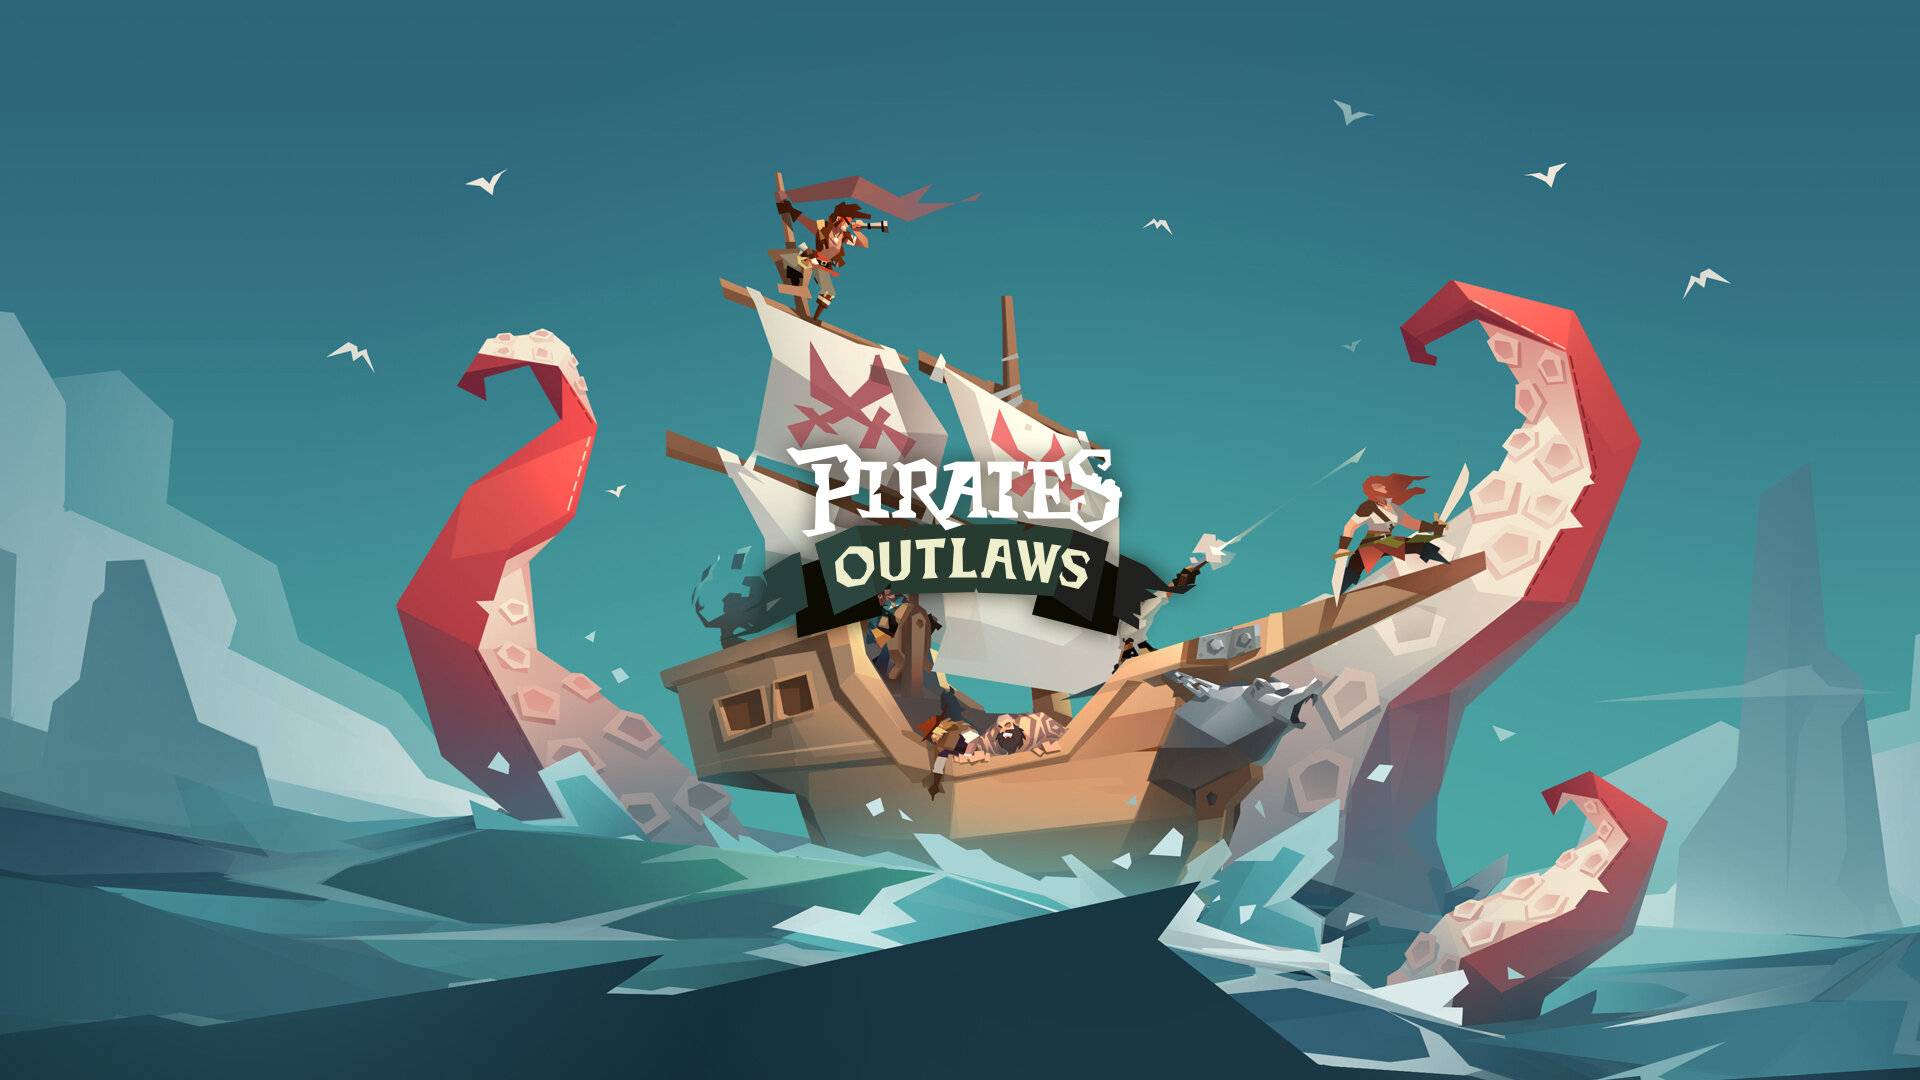 PIRATES OUTLAWS - A unique roguelike card game with his own mechanics. An easy to play and addictive deck builder…